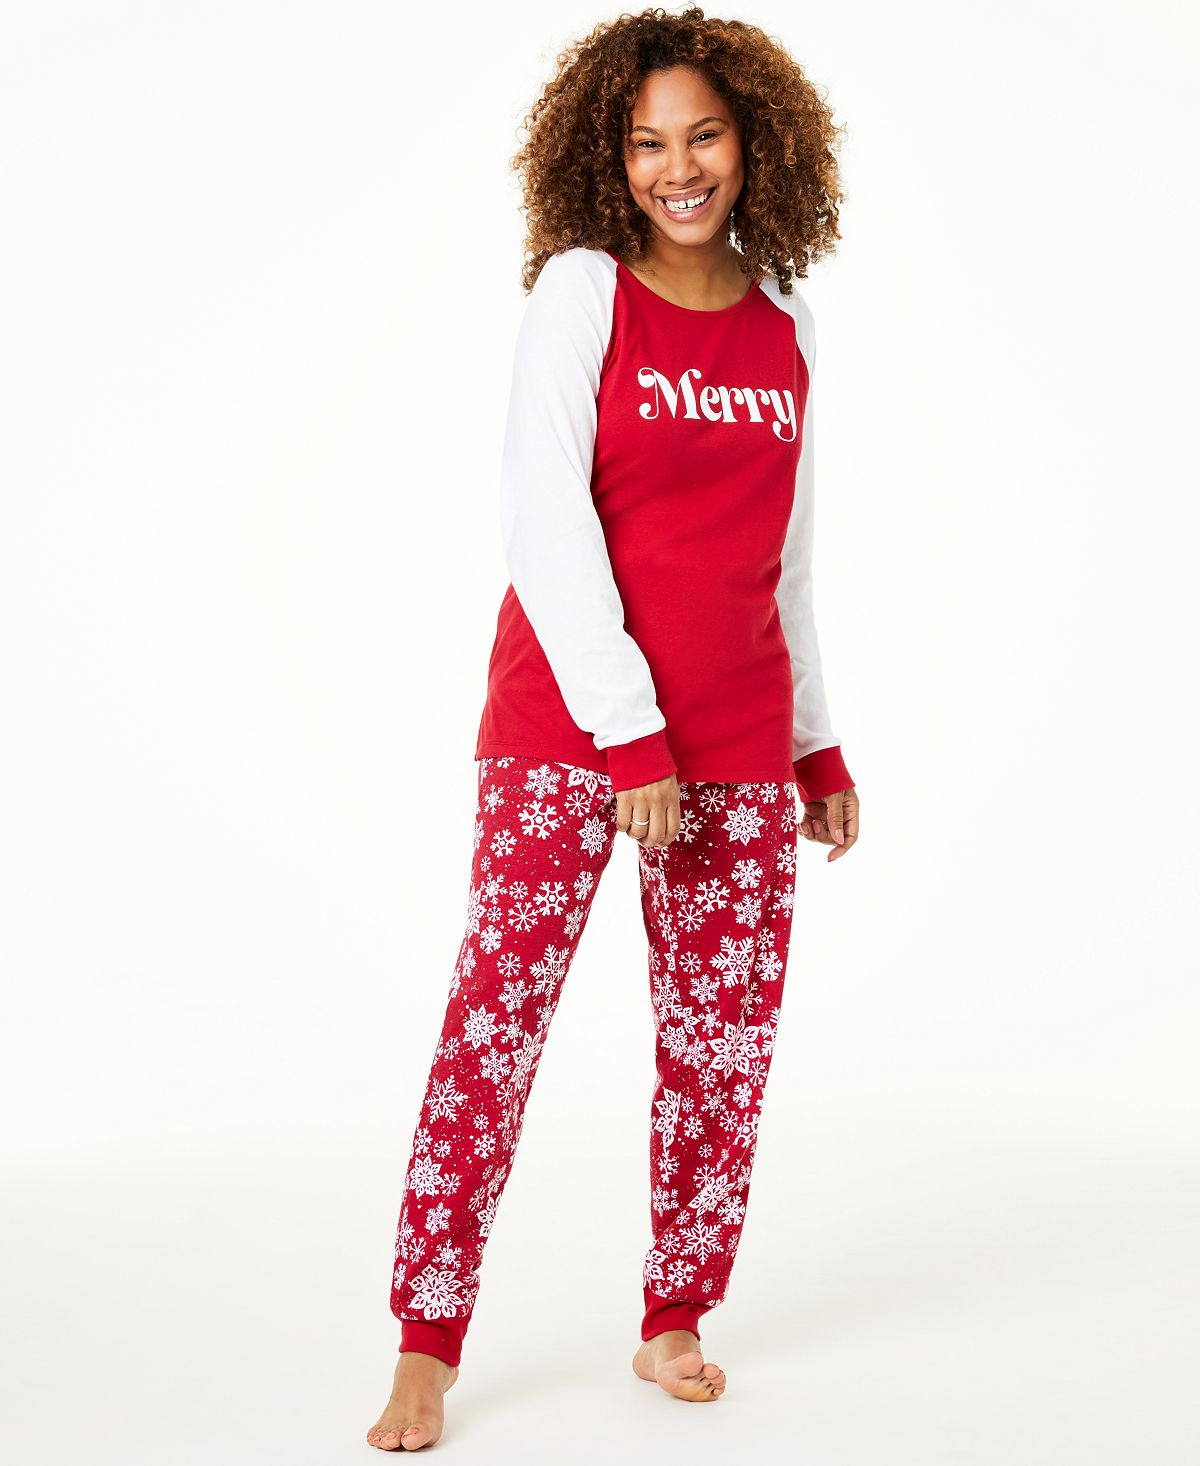 Matching Family Pajamas Wo Merry Pajama Set